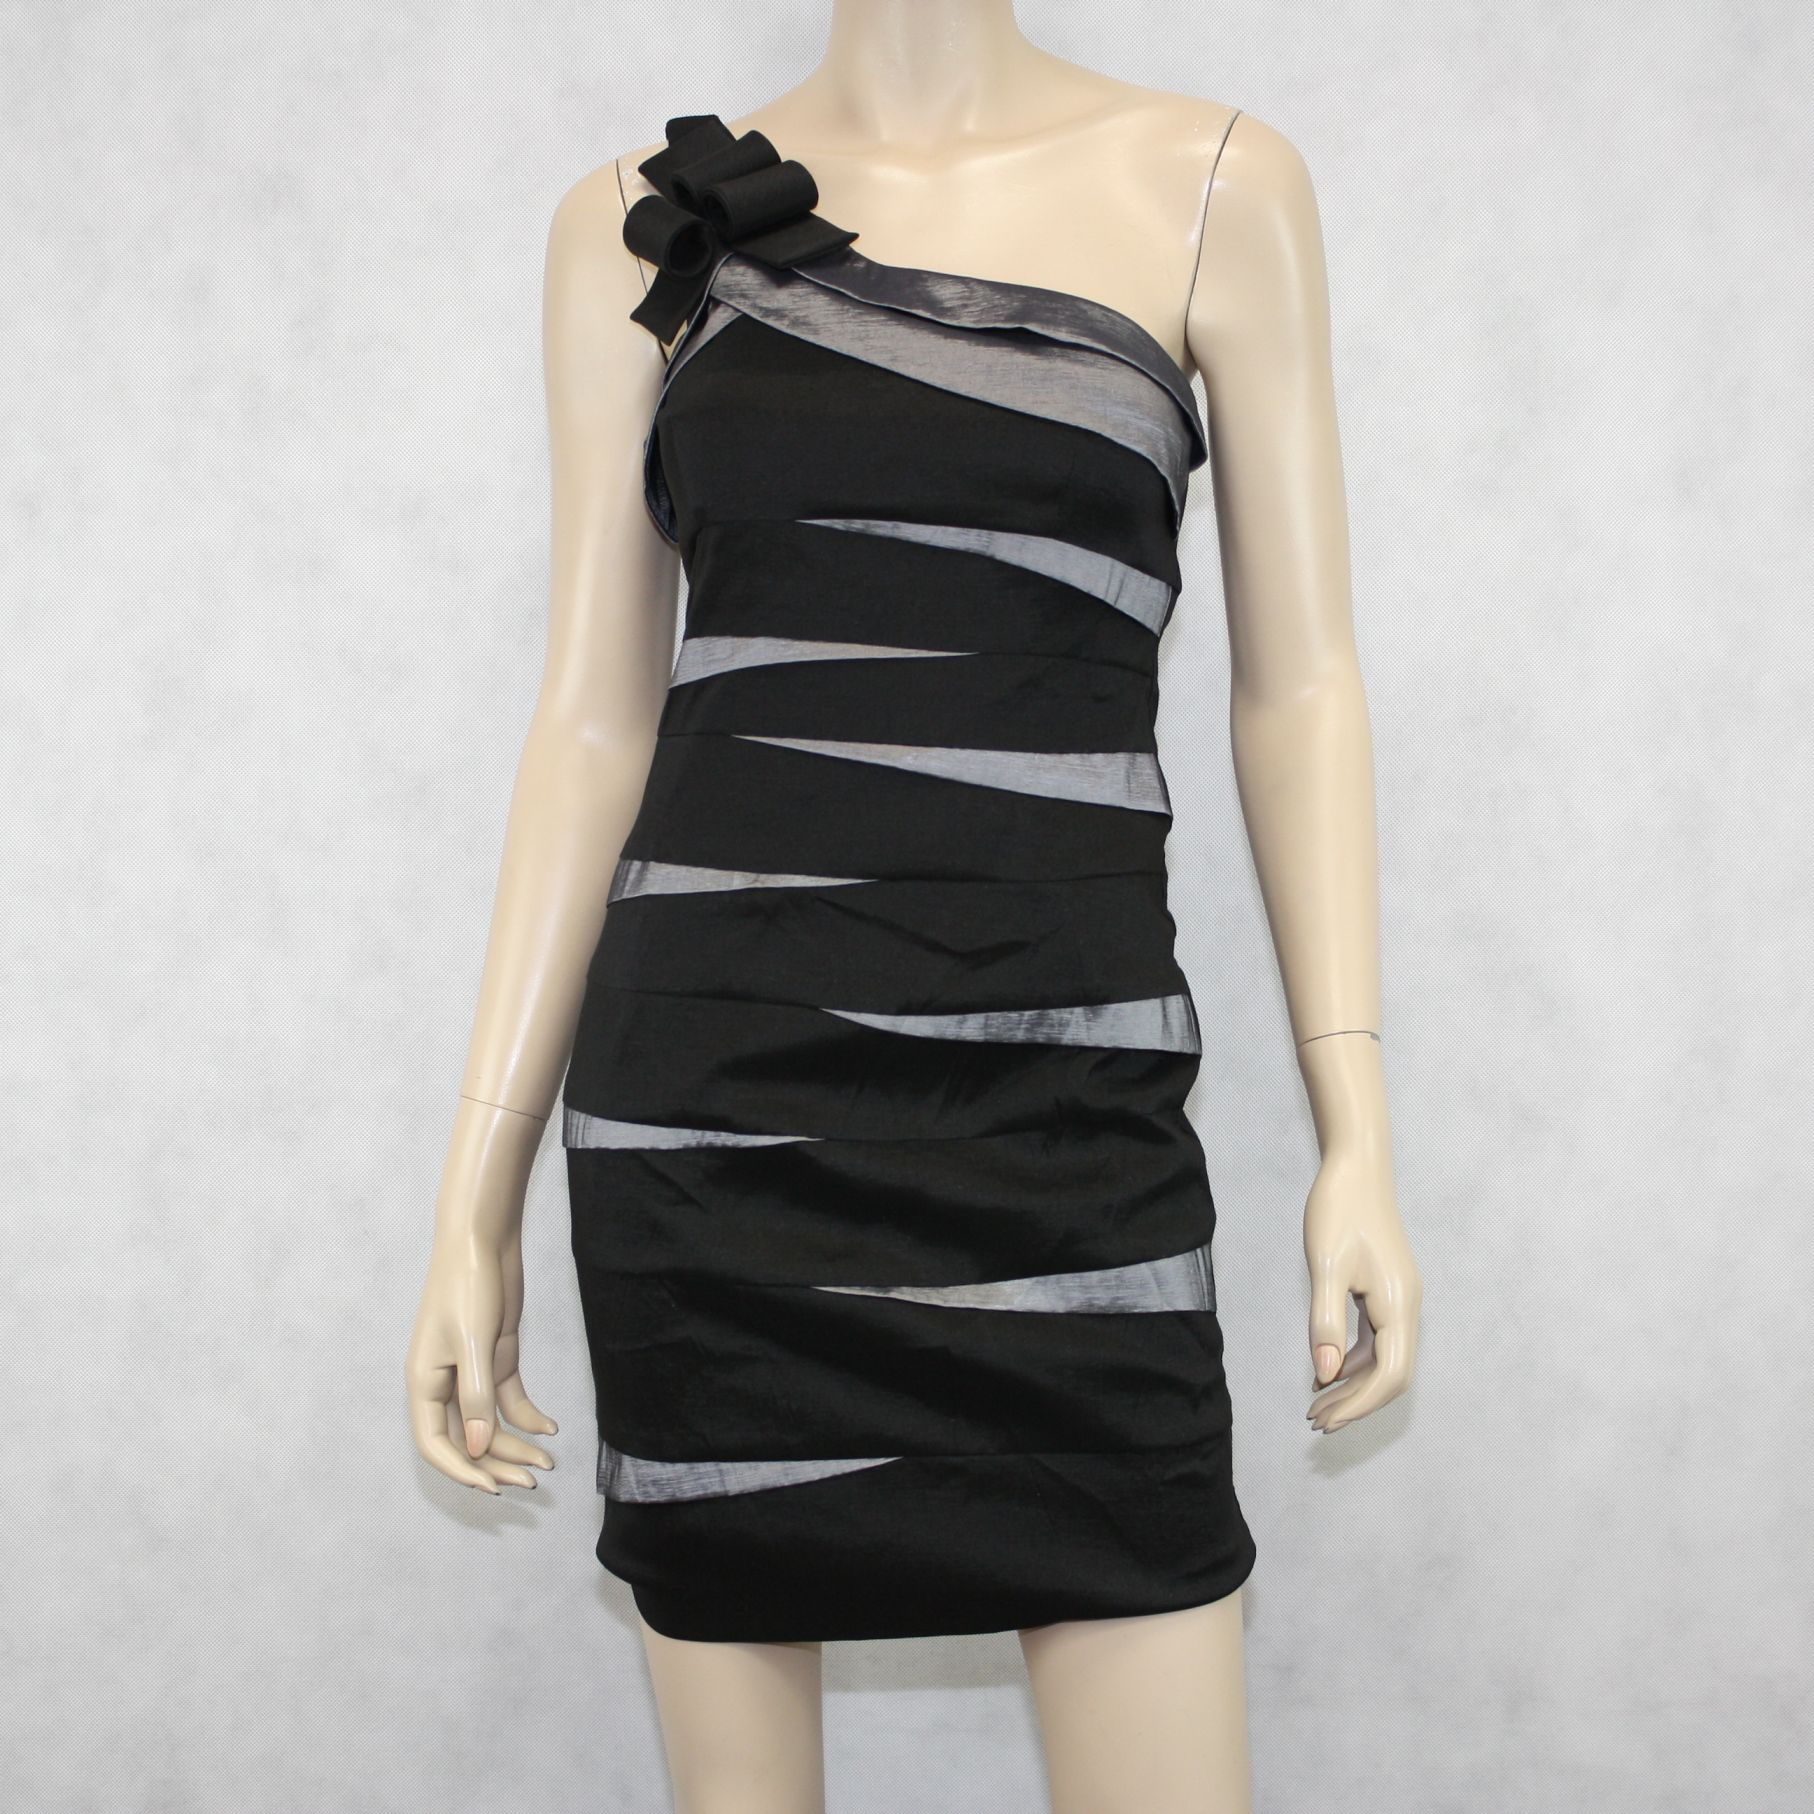 5629eb6b419 Cache One Shoulder Dress Size 8 - vintaya.com